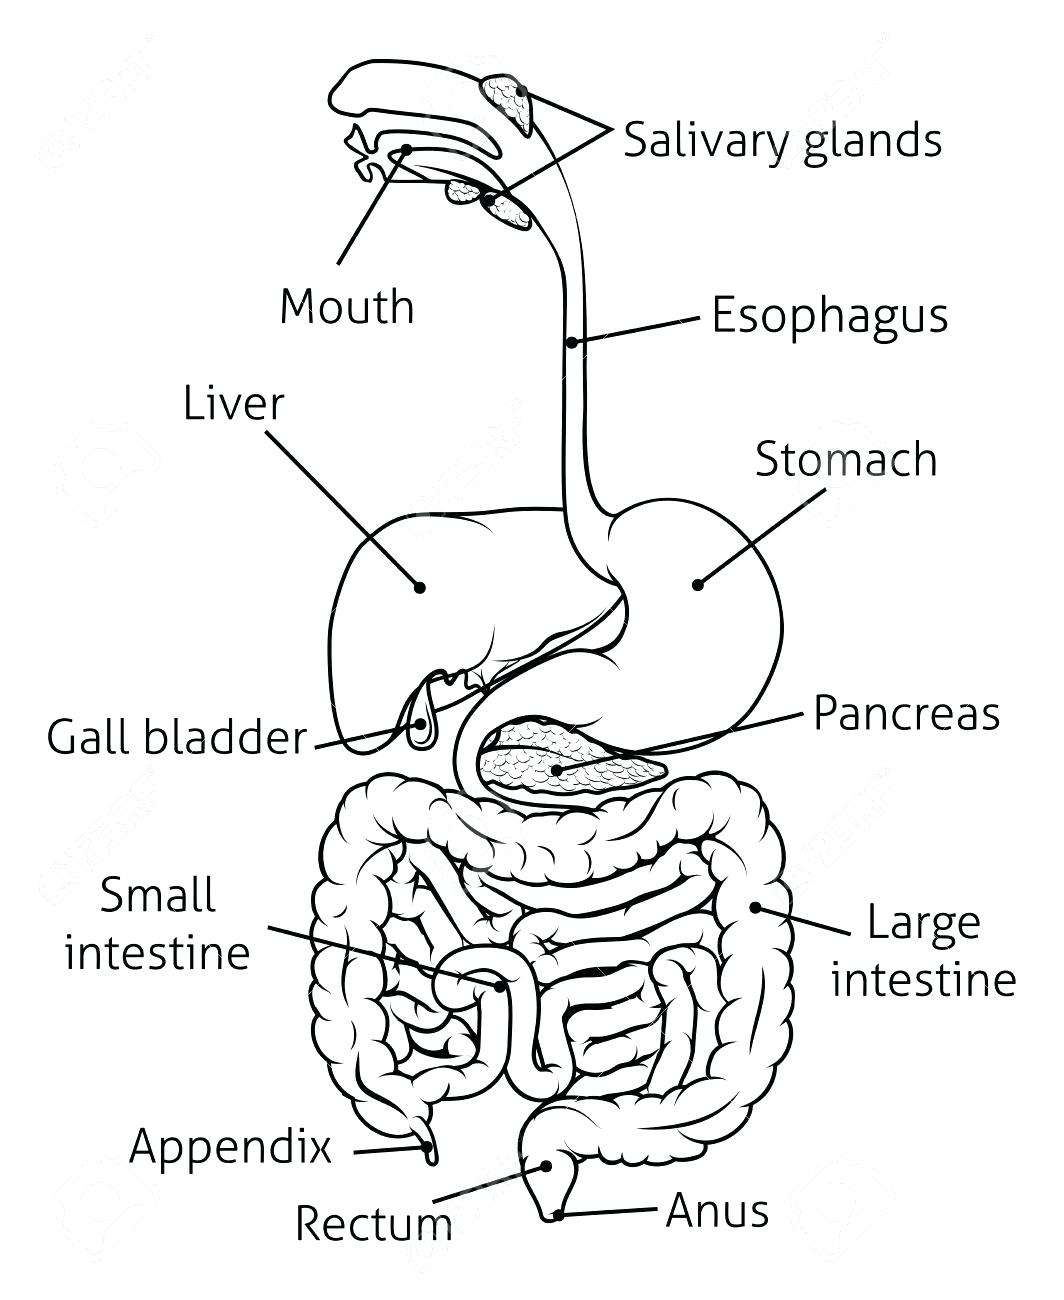 Digestive System Diagram Coloring - House Wiring Diagram Symbols •